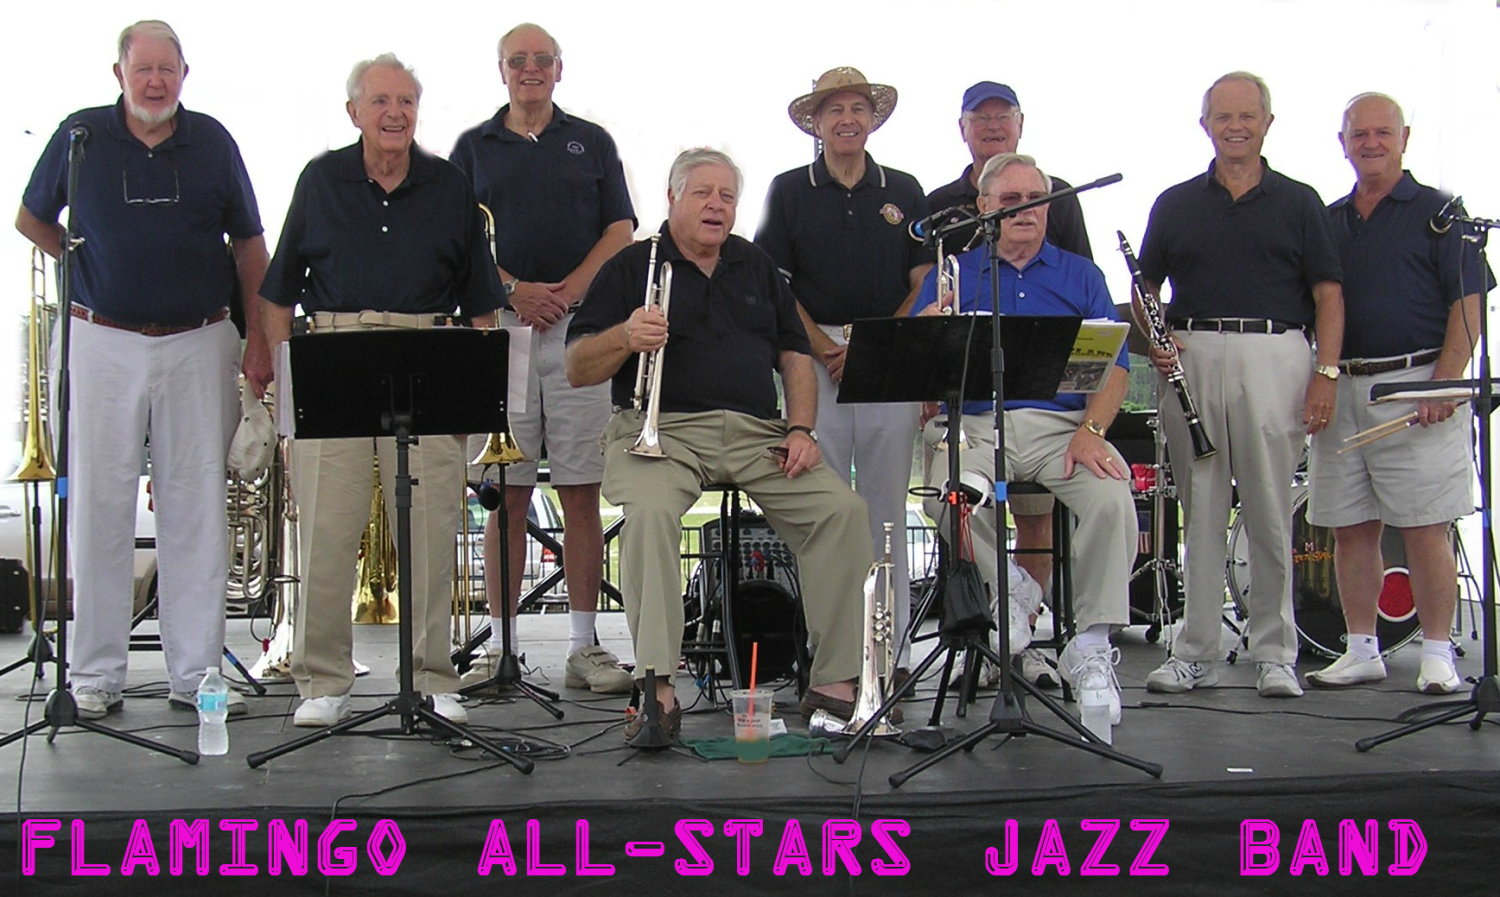 Flamingo All-Star Jazz Band